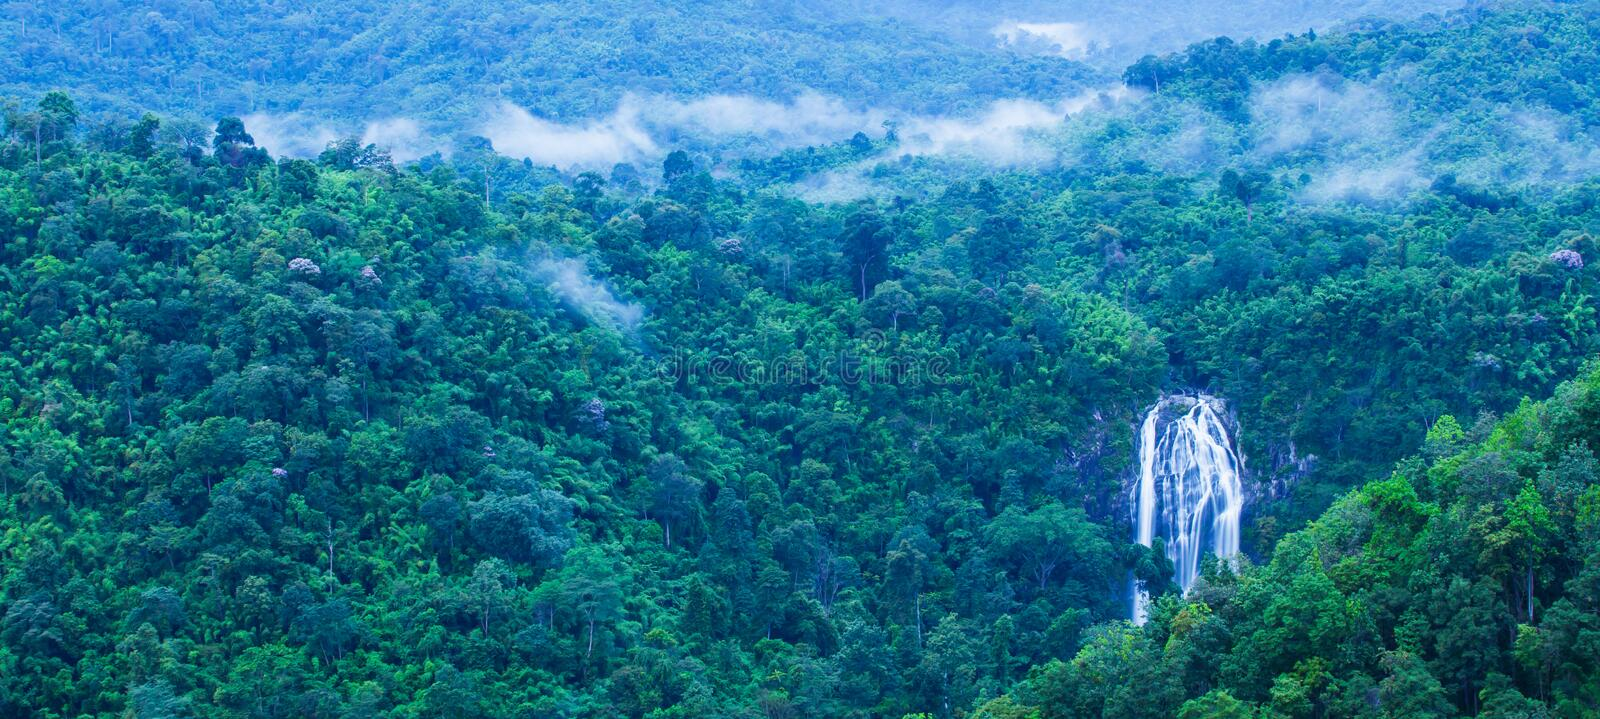 Aerial view of picturesque waterfall in blue mist royalty free stock photos